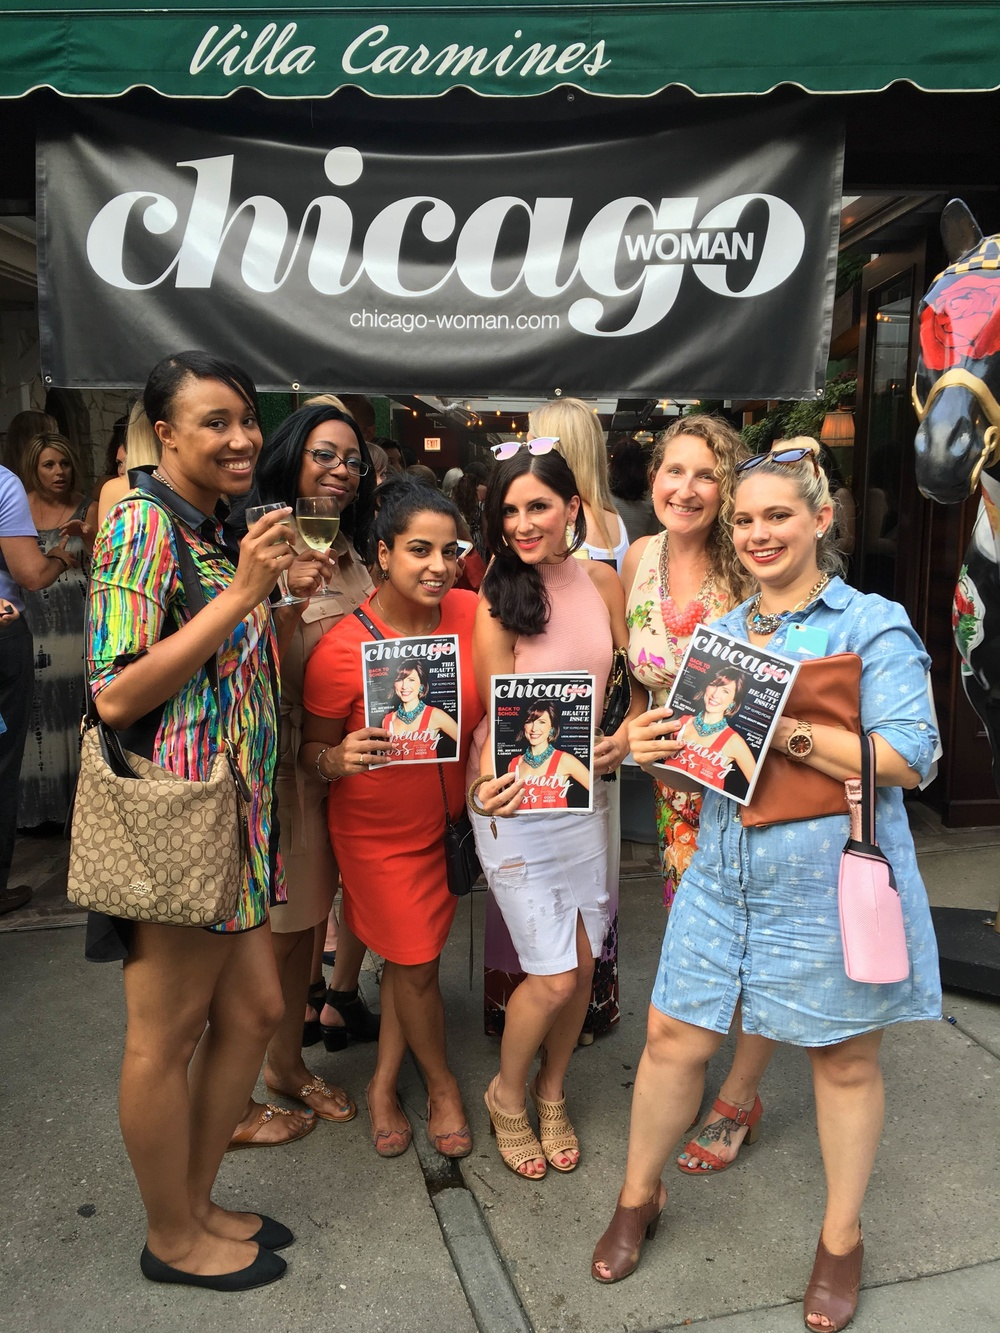 *Sign-up to get all Chicago Woman Magazine Updates Here: chicago-woman.com/